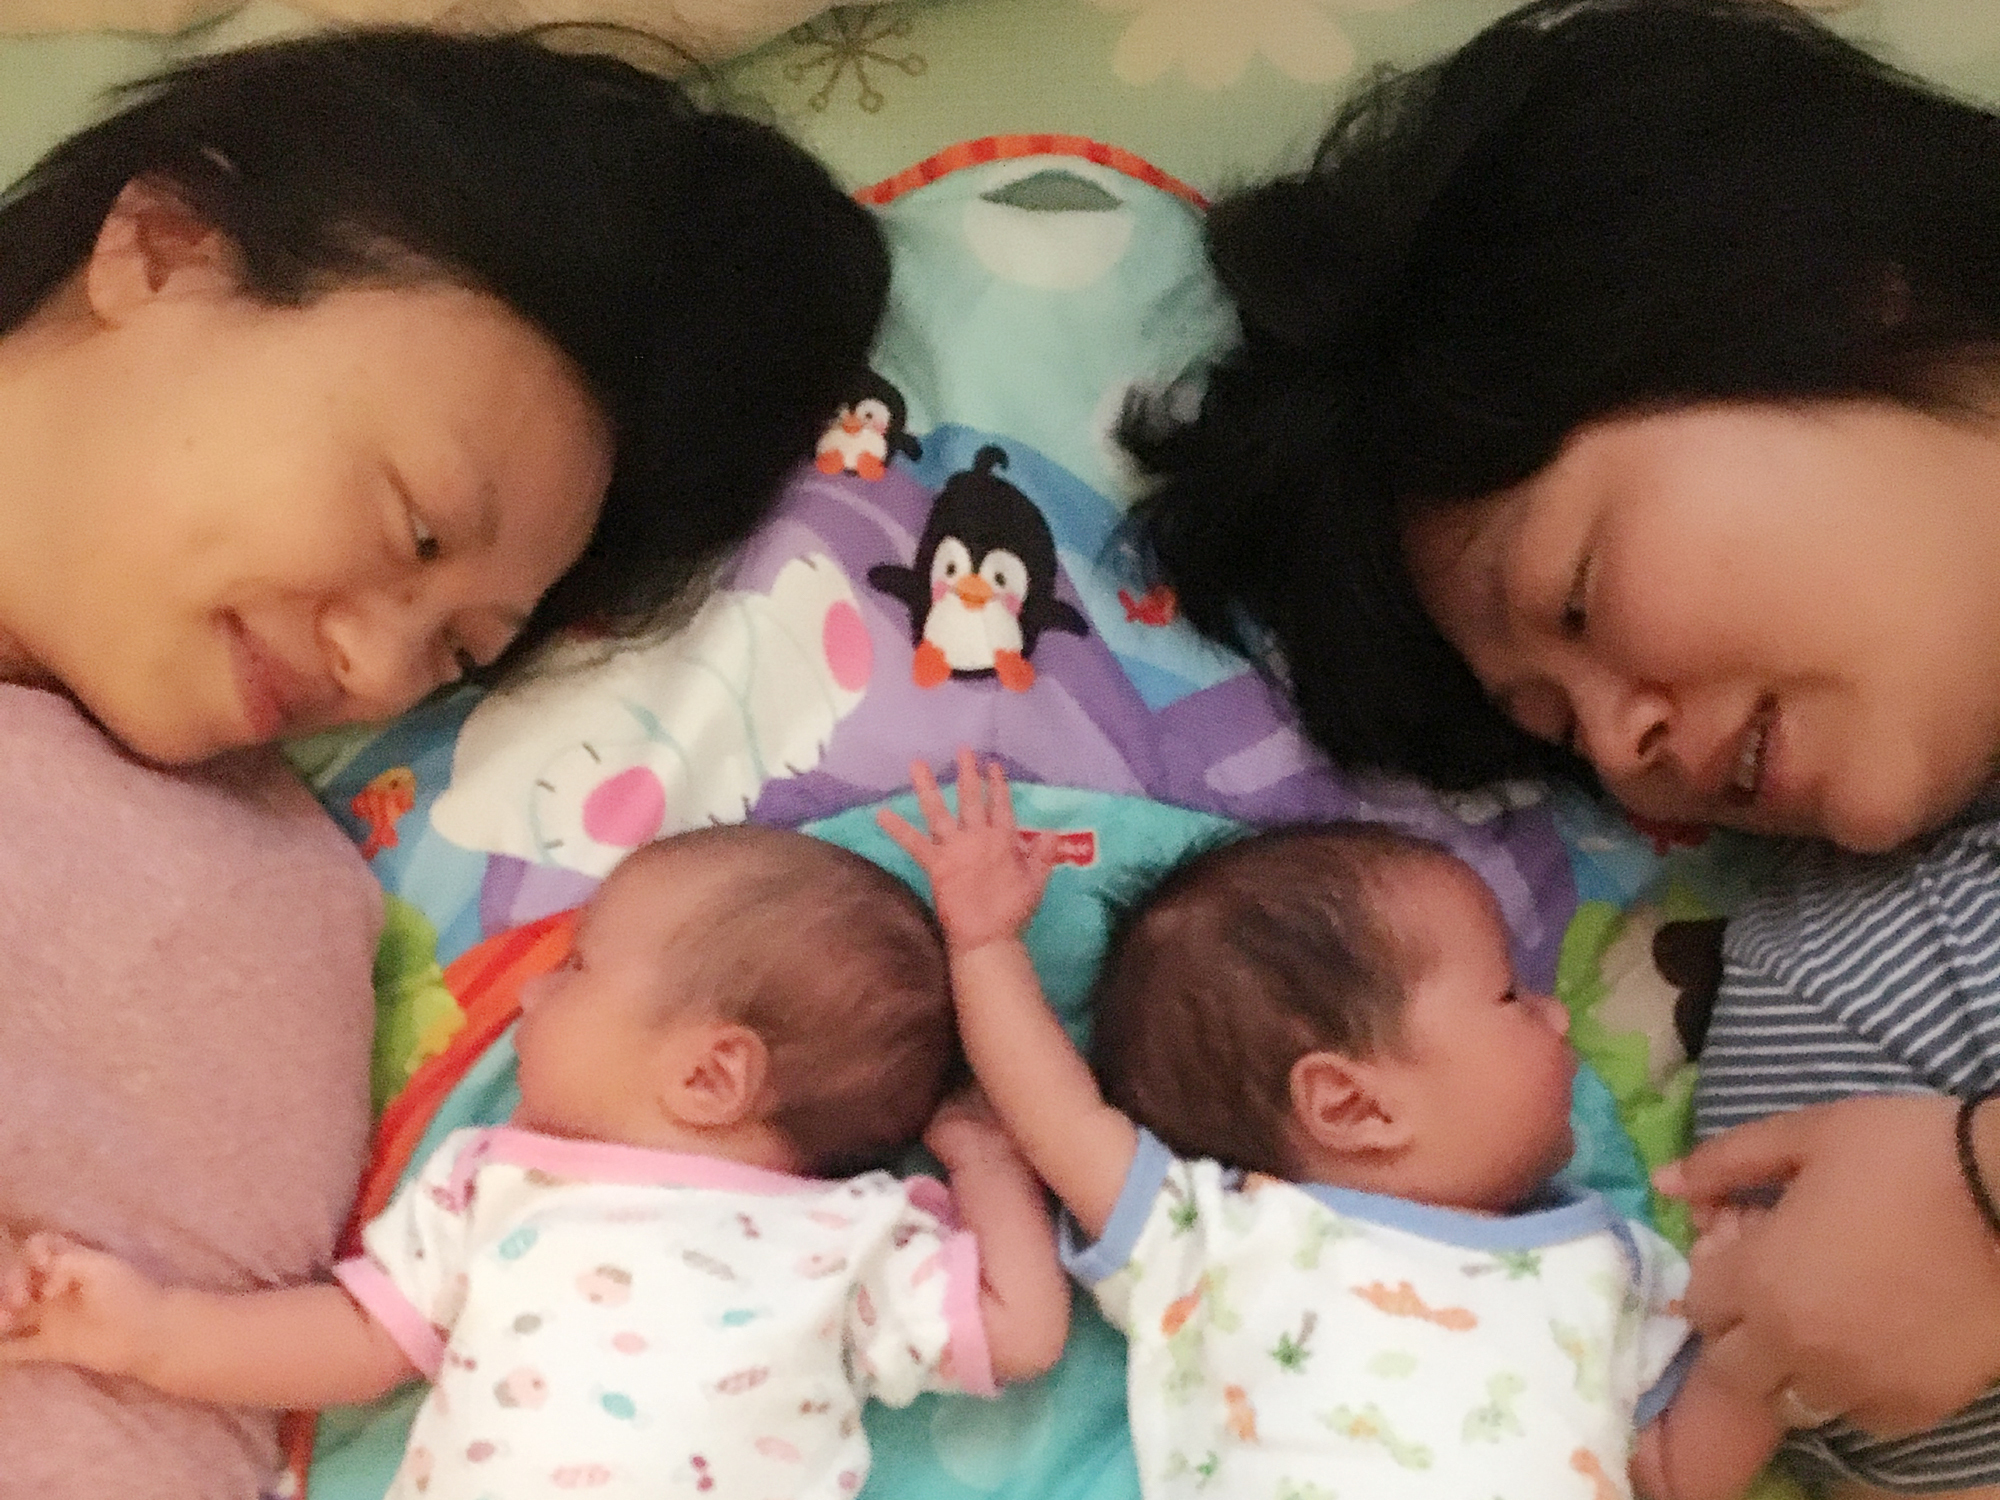 Undaunted by chinas rule book lesbian couple welcomes their newborn twins